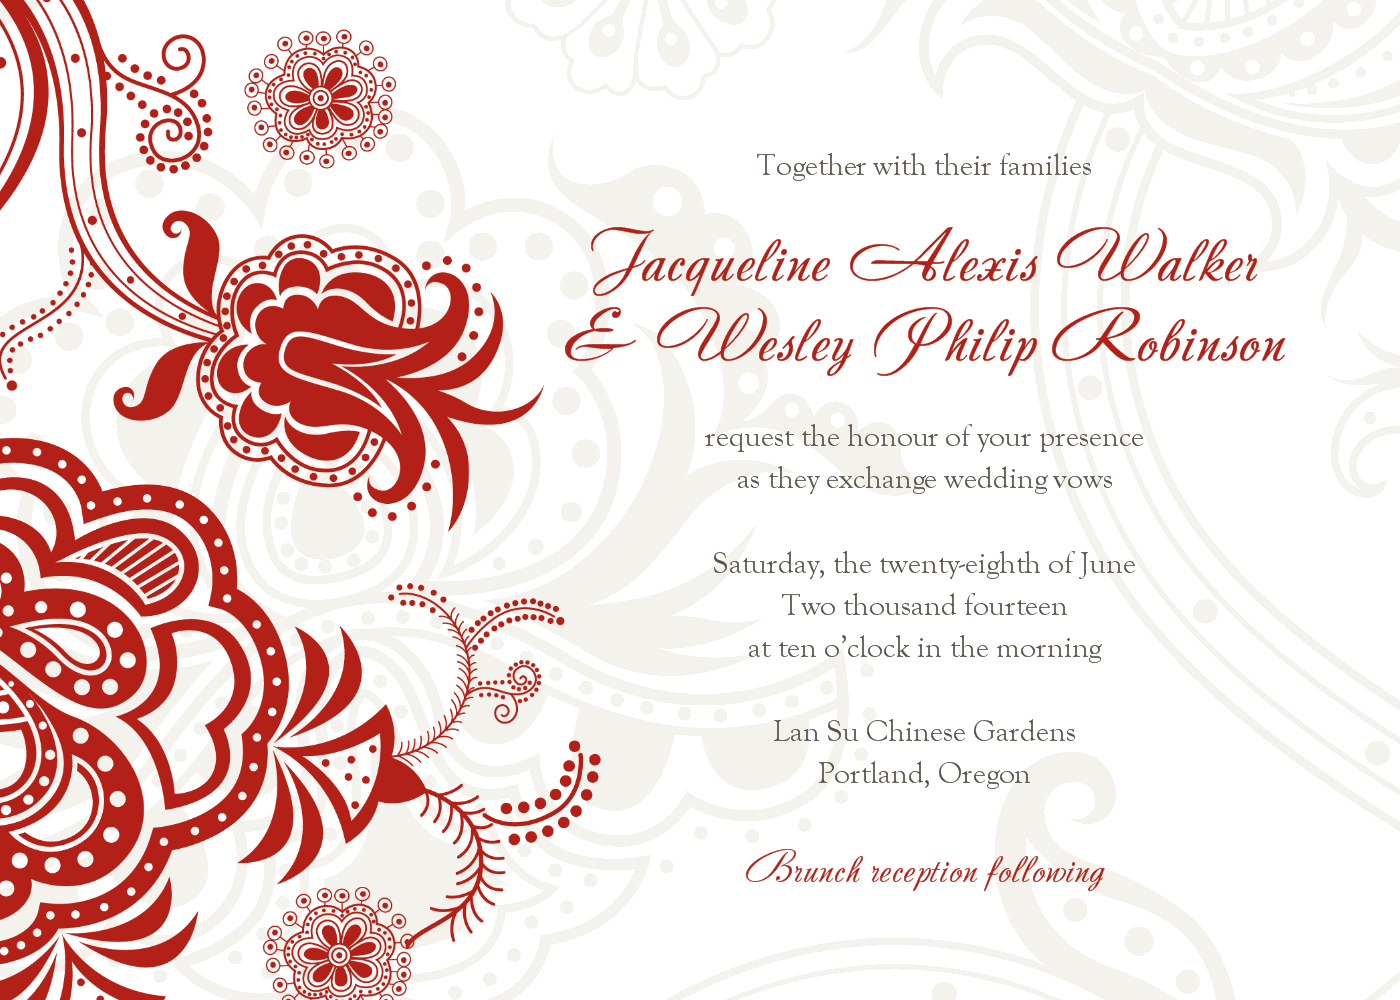 Printable Wedding Invitations | Free Printable Wedding Invitation ...